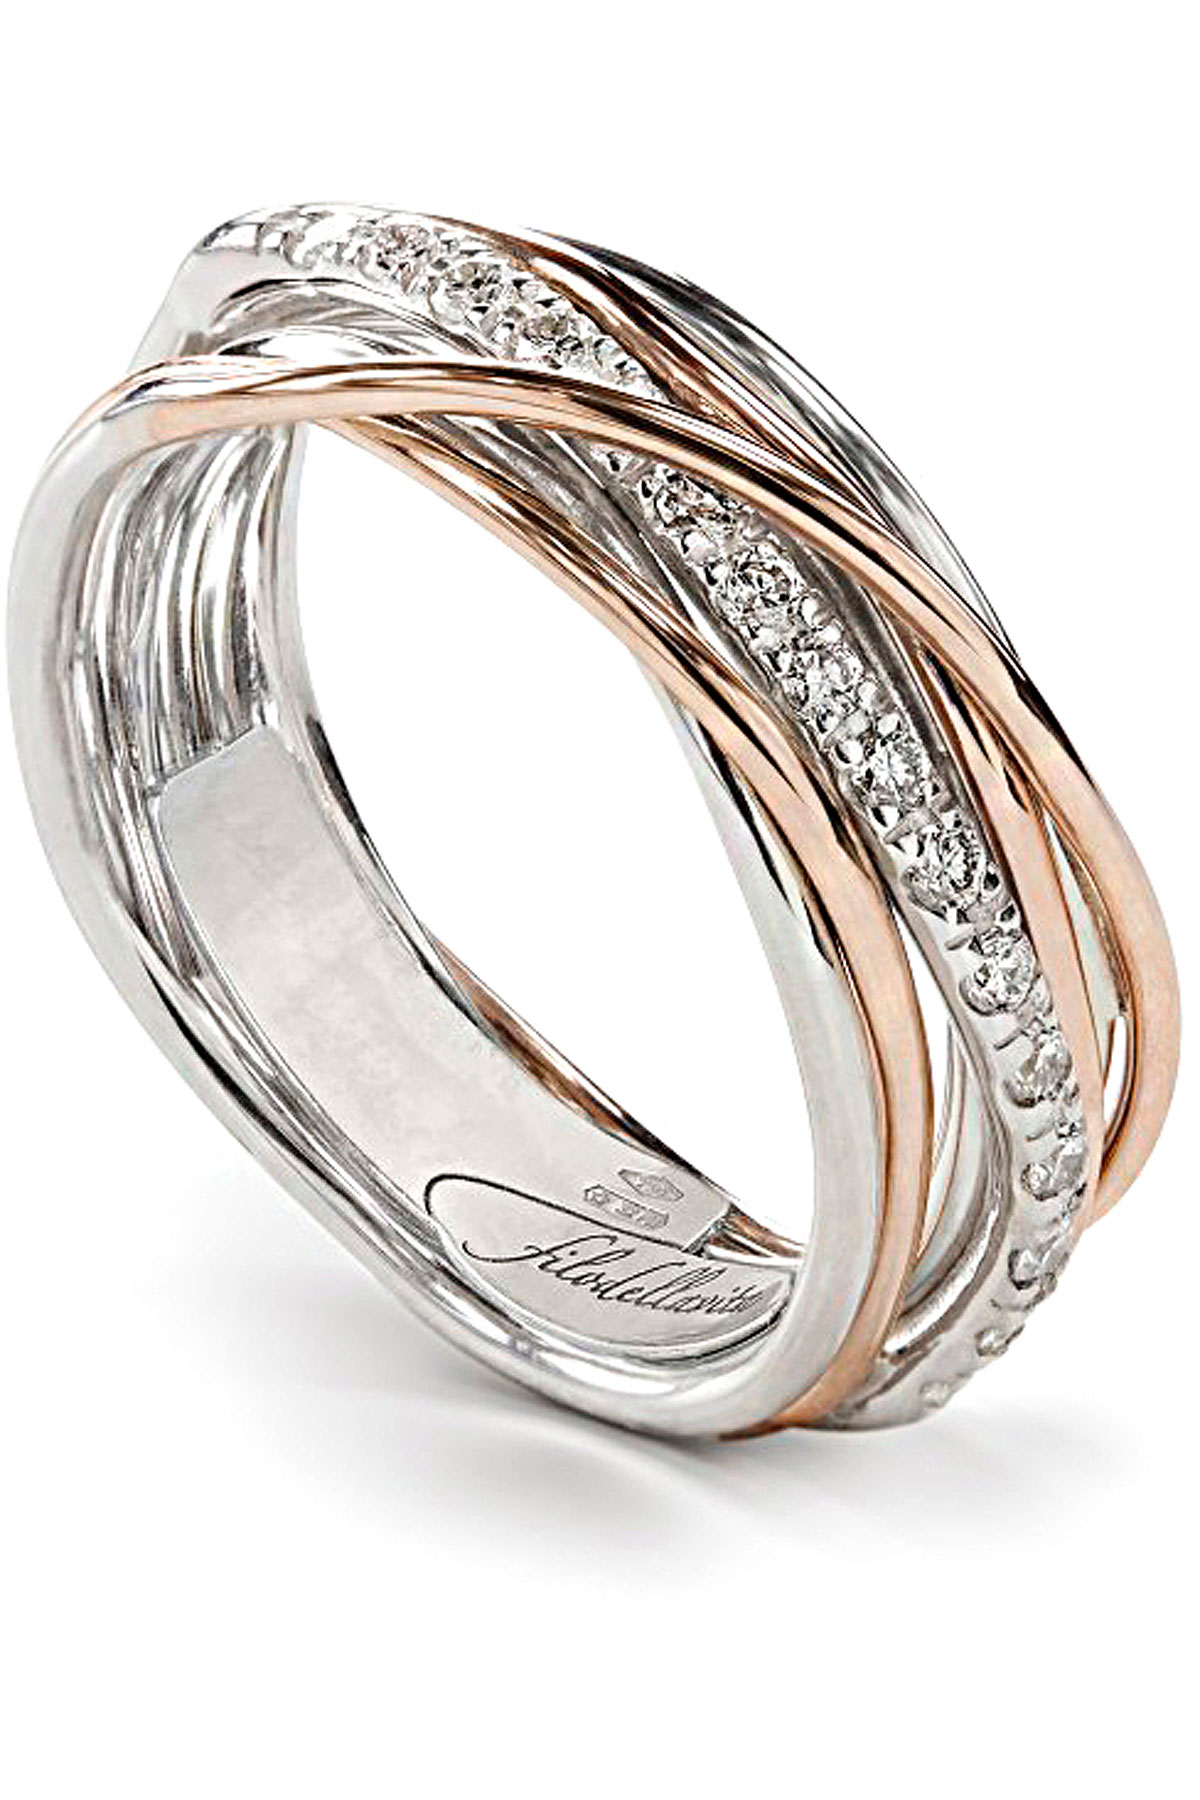 Filo Della Vita Ring for Women, Golden Pink, 9 kt Pink Gold, 2019, USA 6 3/4 ( I 14 - GB N) USA 7 ( I 15 - GB N 1/2) USA 8 ( I 17 - GB P 1/2) USA 8 1/